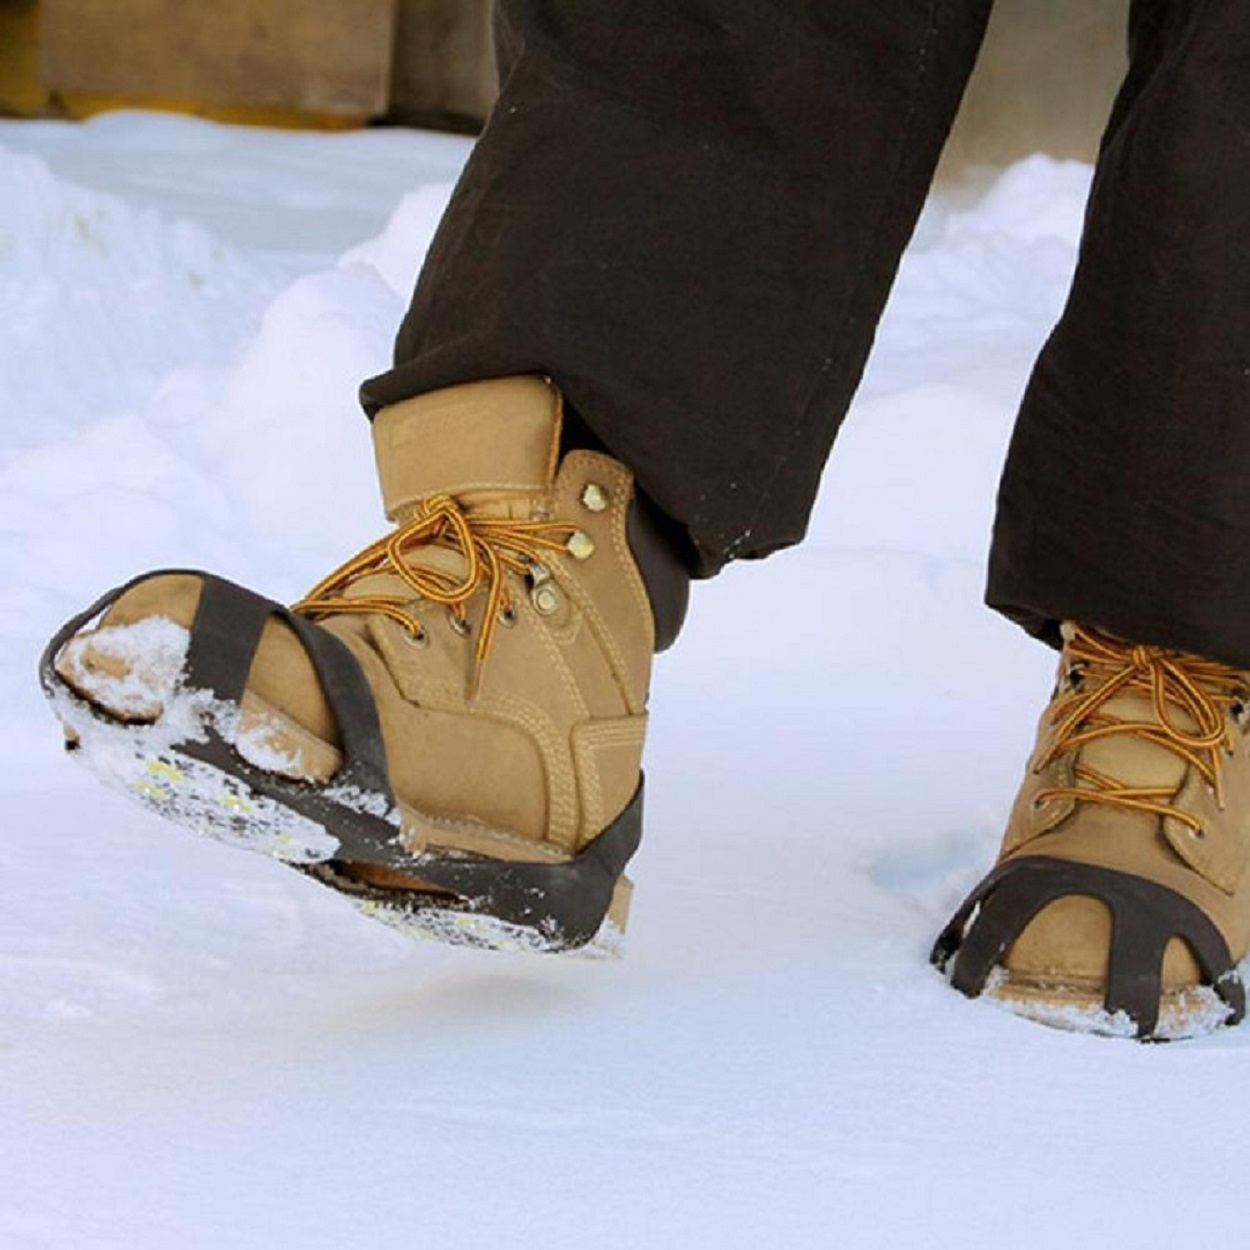 Attachable Anti-Skid Ice-Traction Cleats (2-Pack)